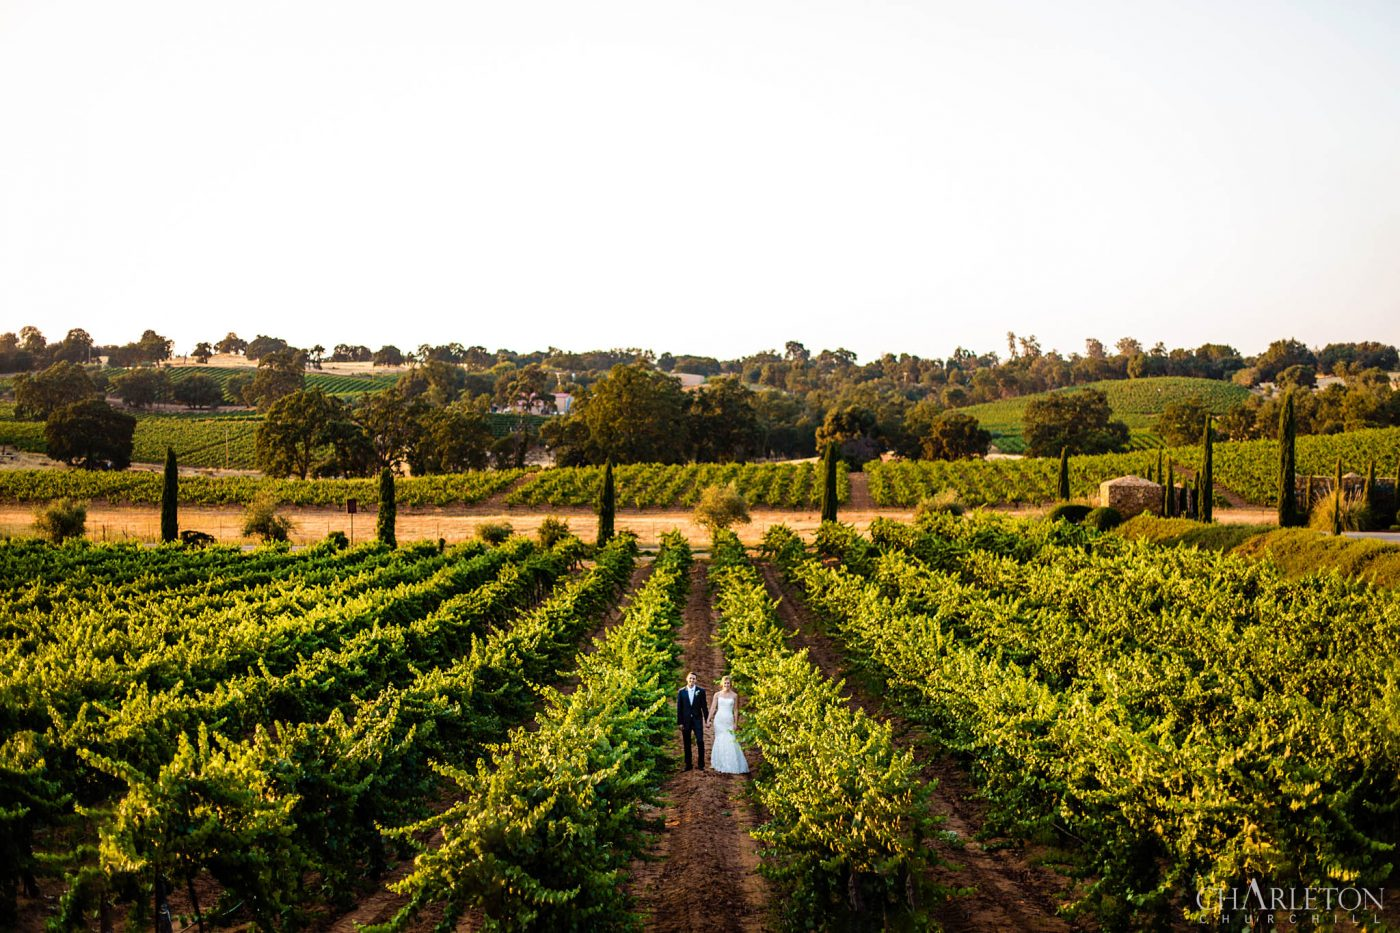 winery of bella piazza in plymouth for weddings and couples in the vineyard of amador county